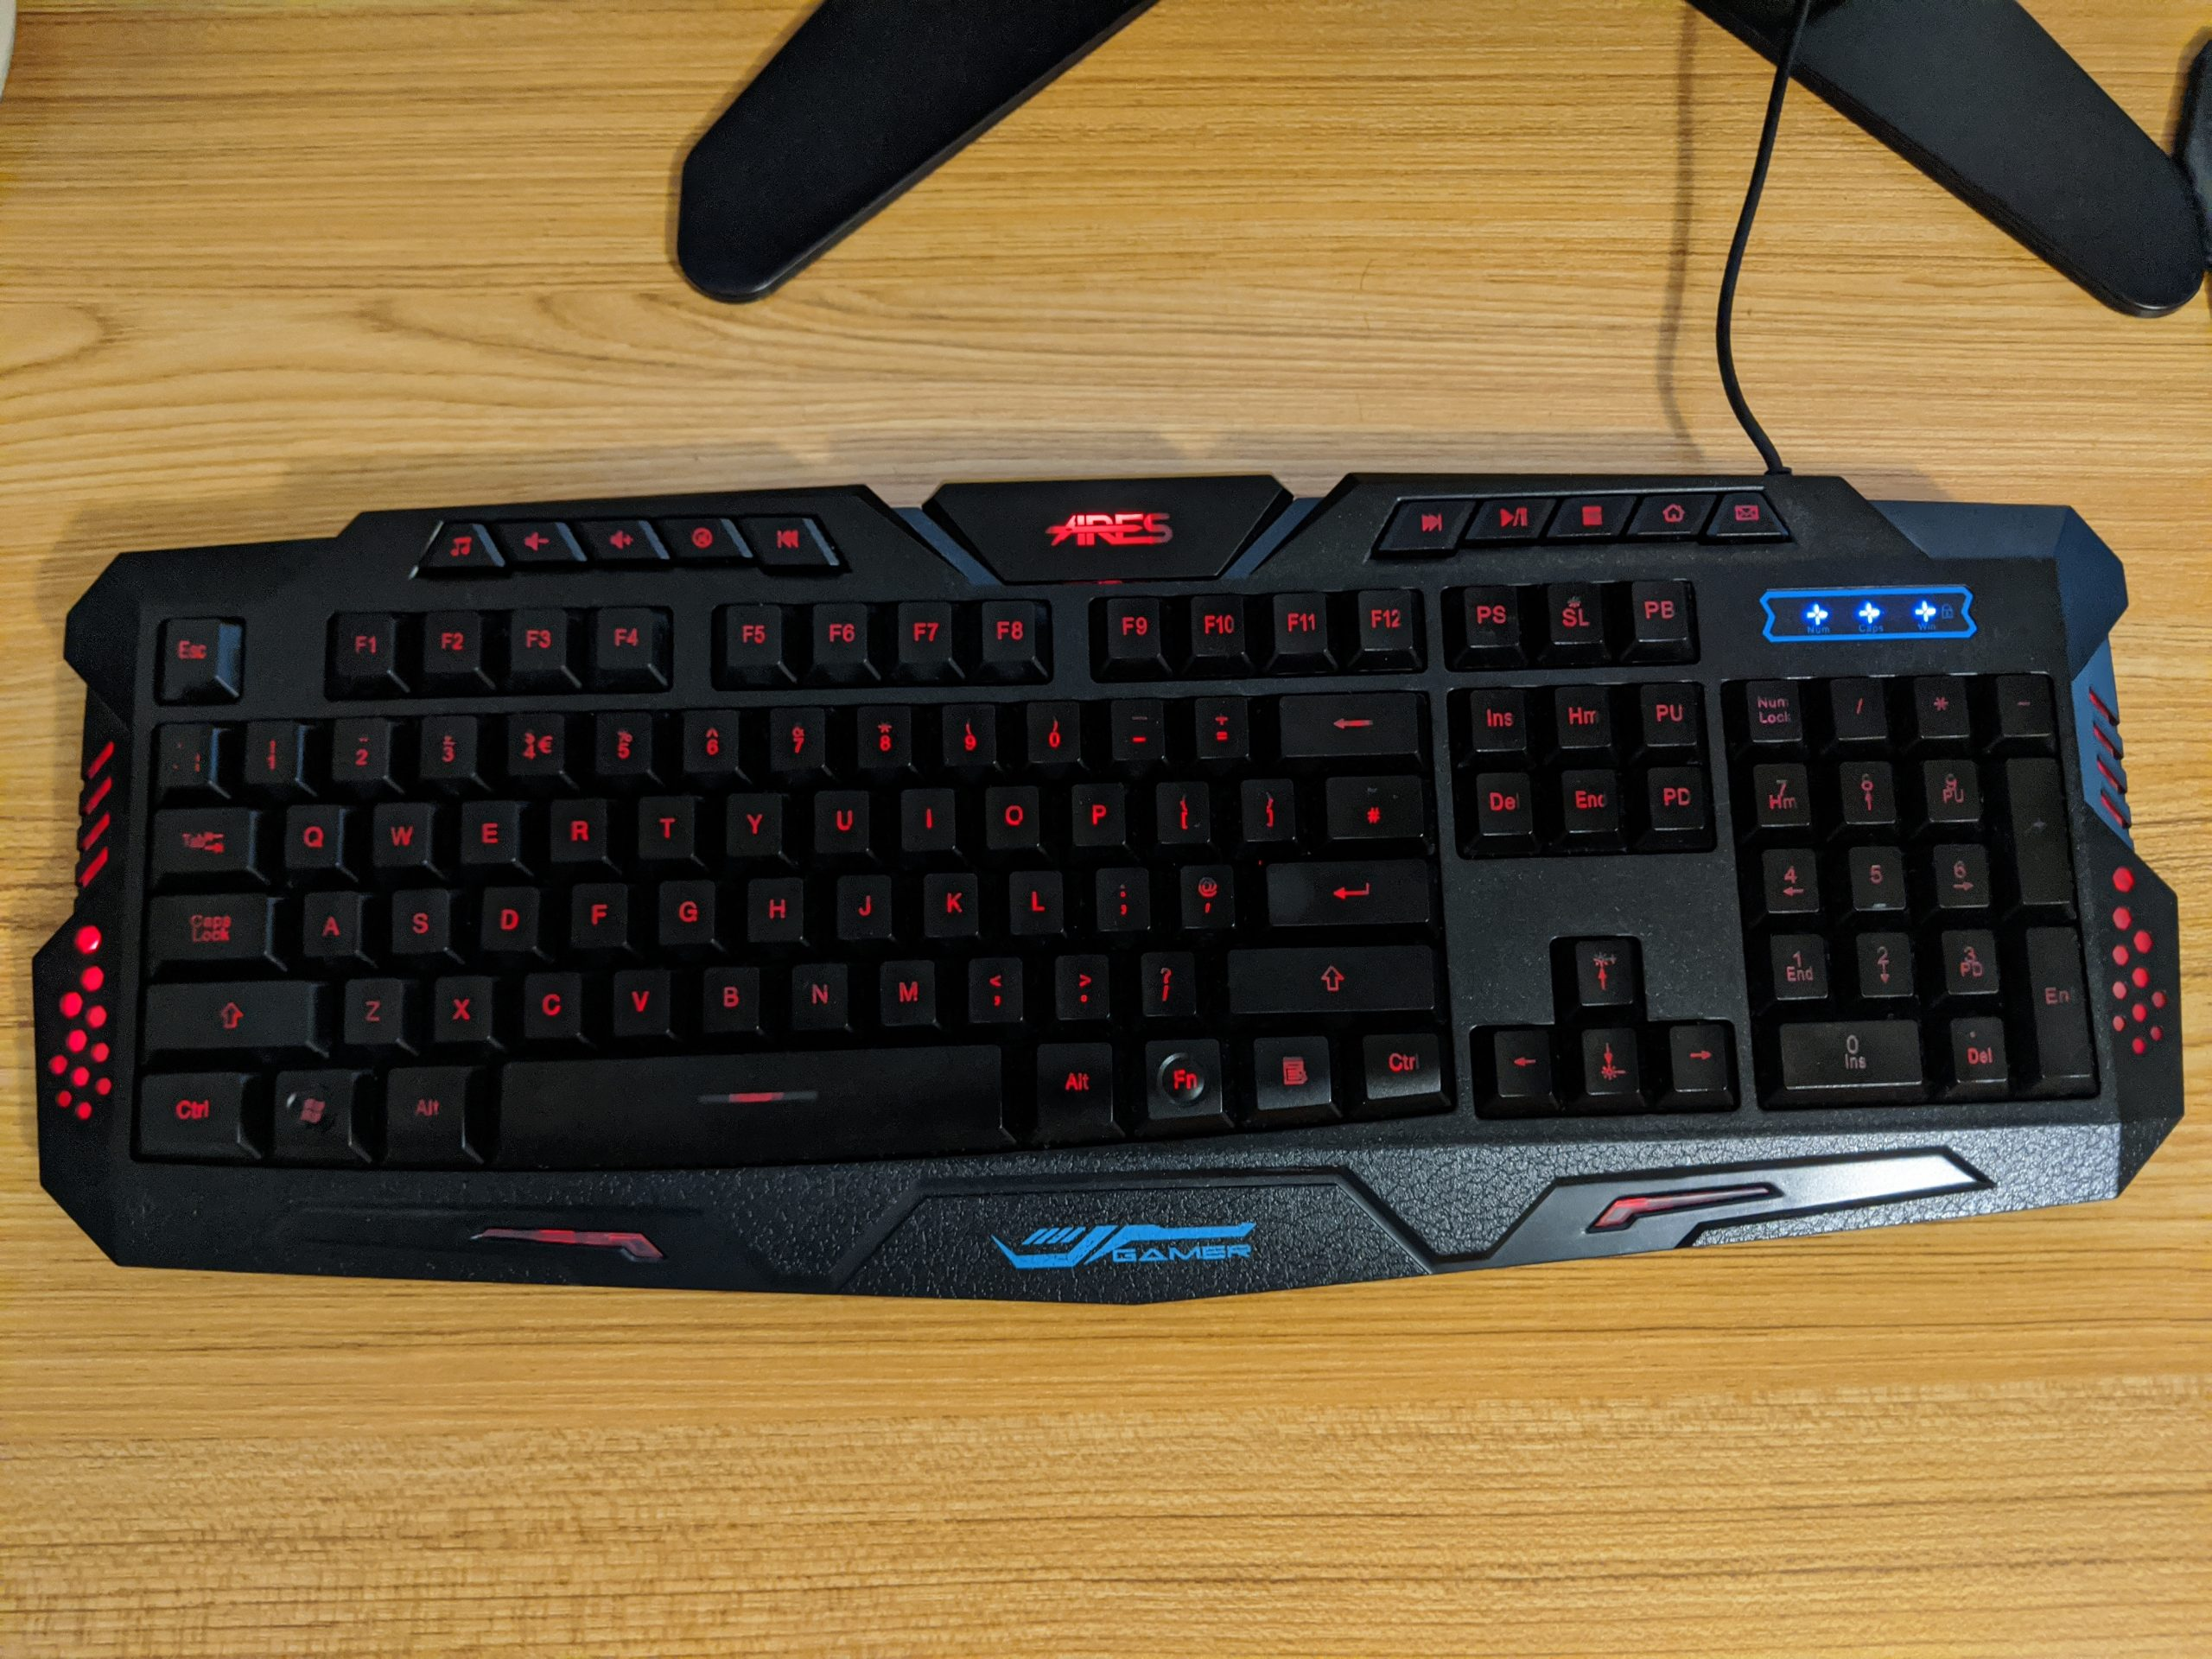 An ARES K1 rubber dome keyboard.